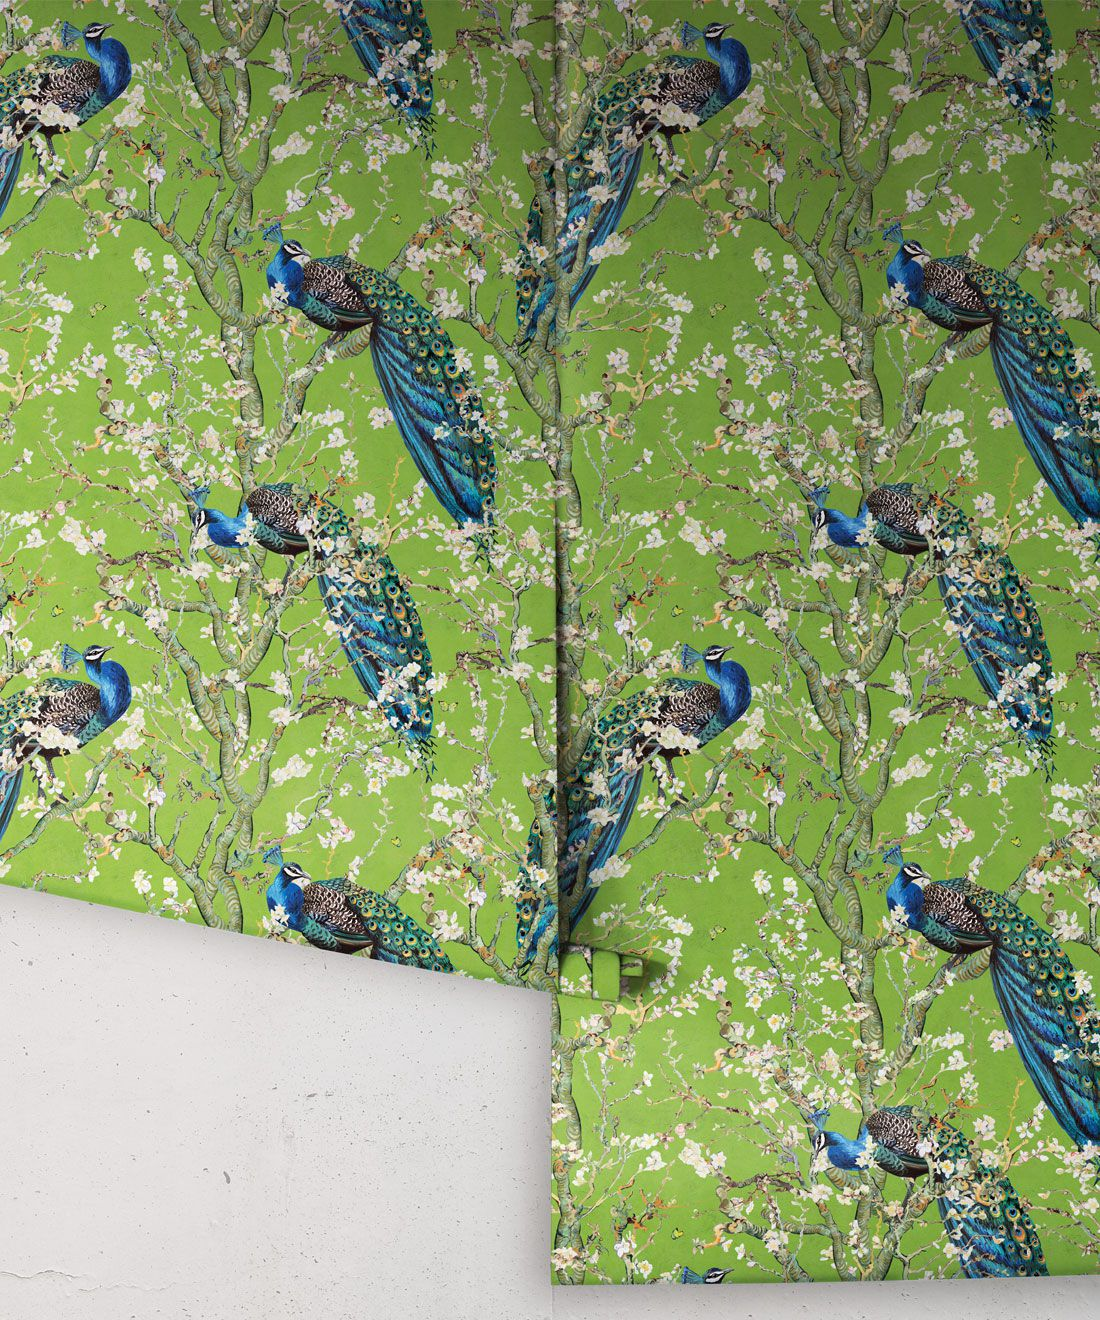 Almond Blossom Wallpaper • Chinoiserie Wallpaper • Wallpaper with Peacocks • Green Chartreause Wallpaper •Rolls